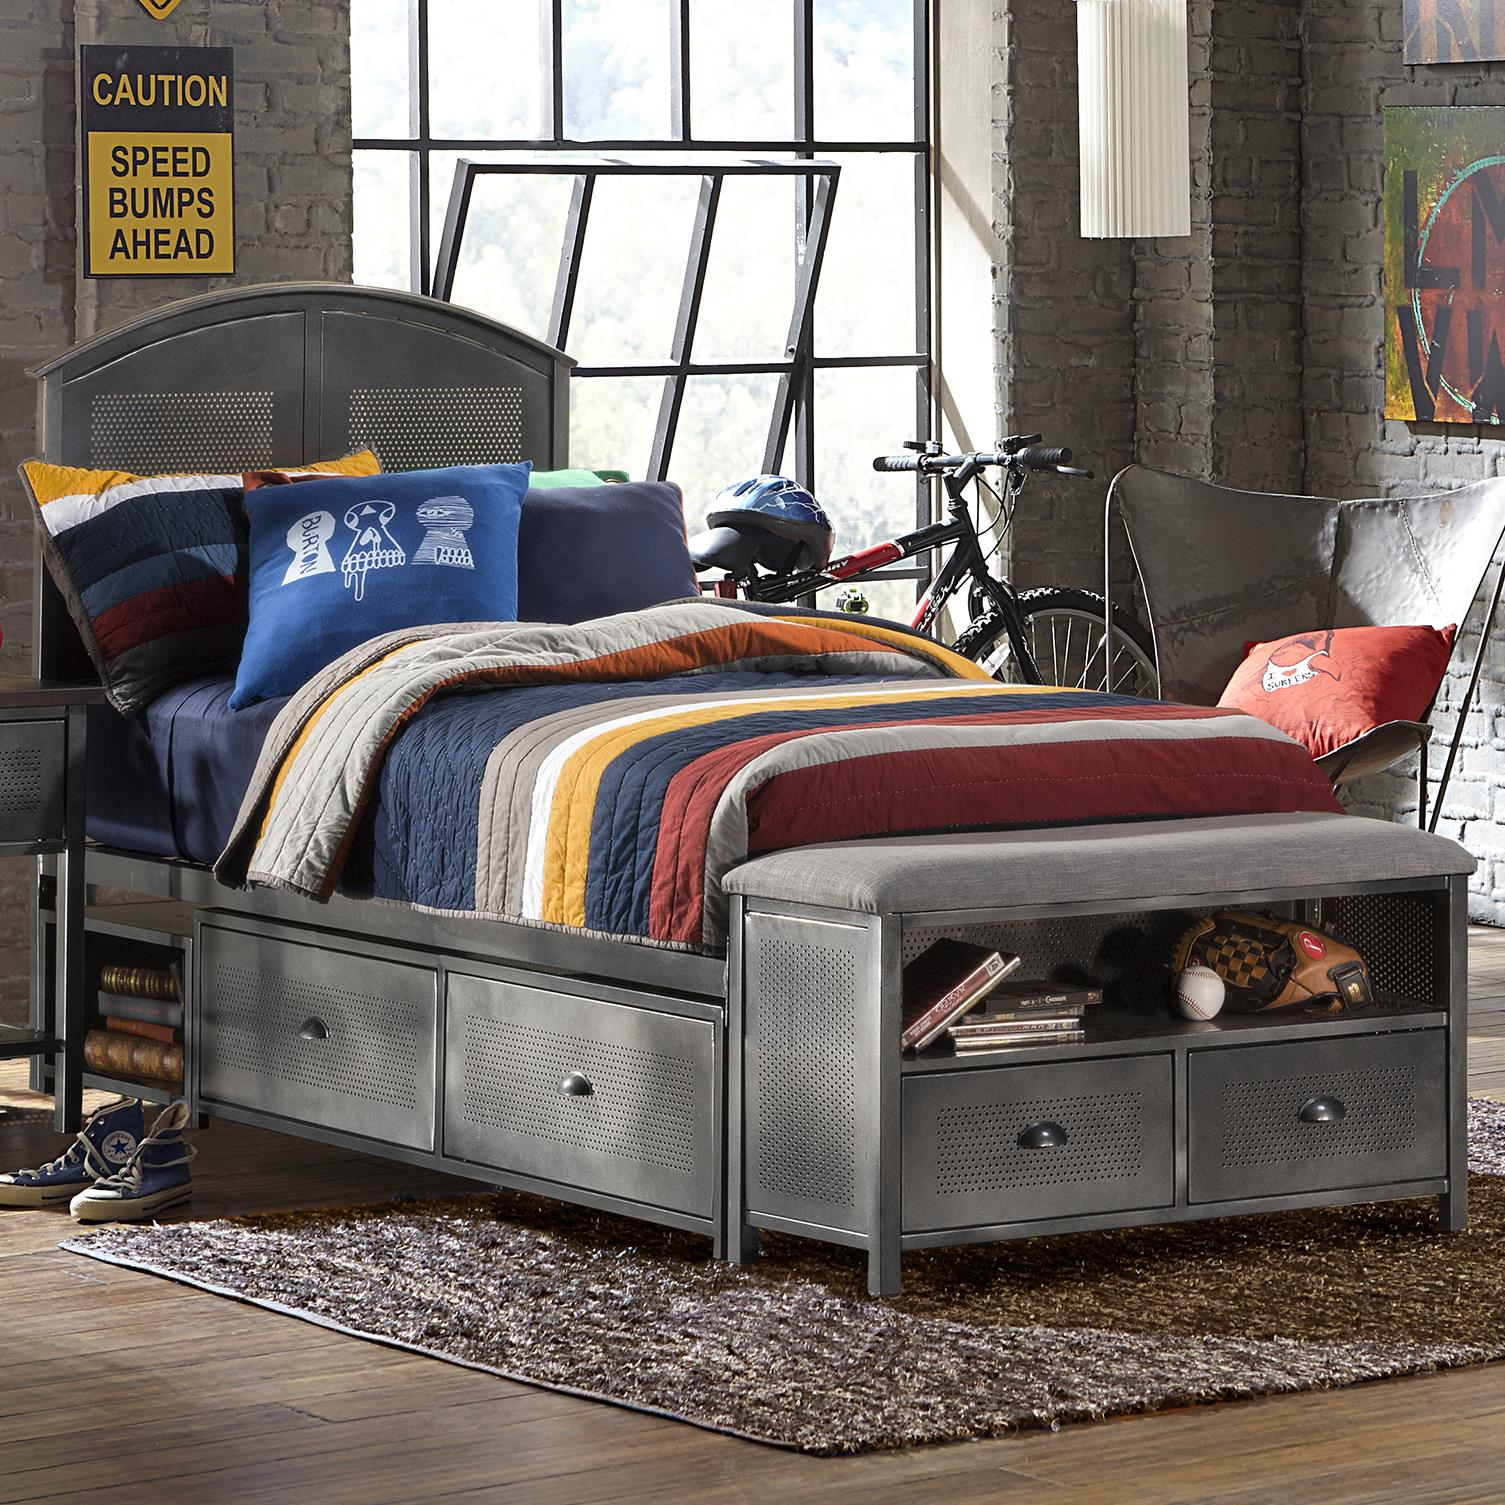 Bench By Bed: Contemporary Full Storage Bed Set With Footboard Bench By